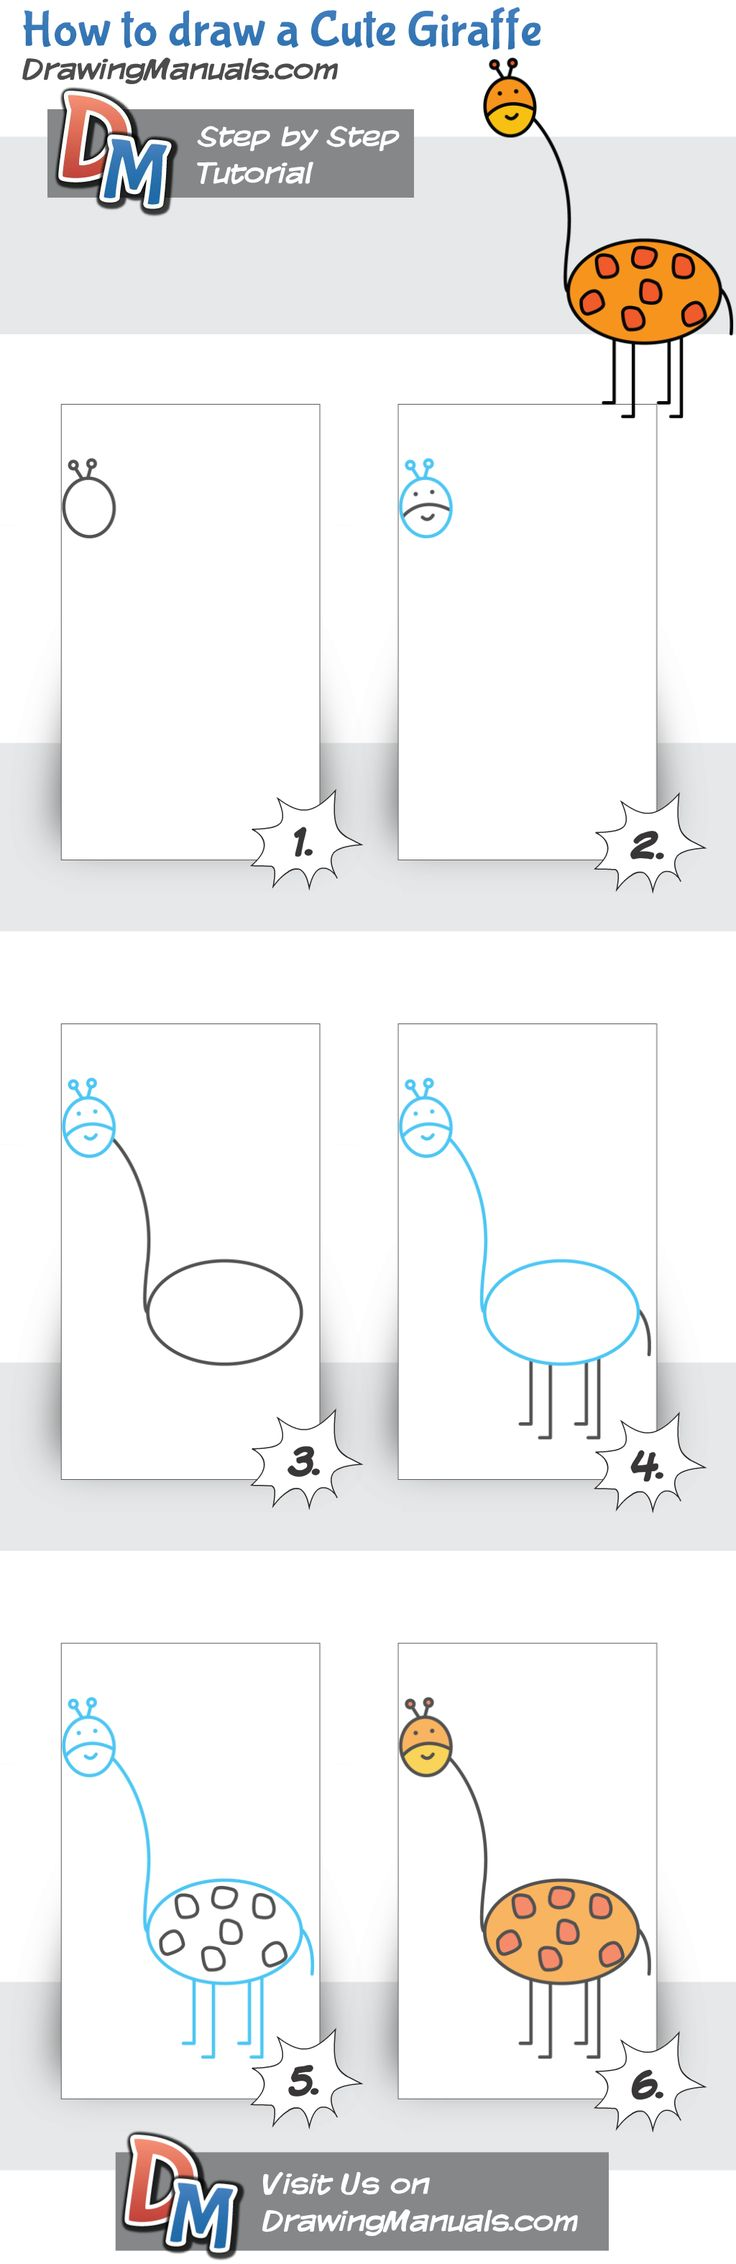 How to draw a Cute Giraffe for Kids. Only on DrawingManuals.com